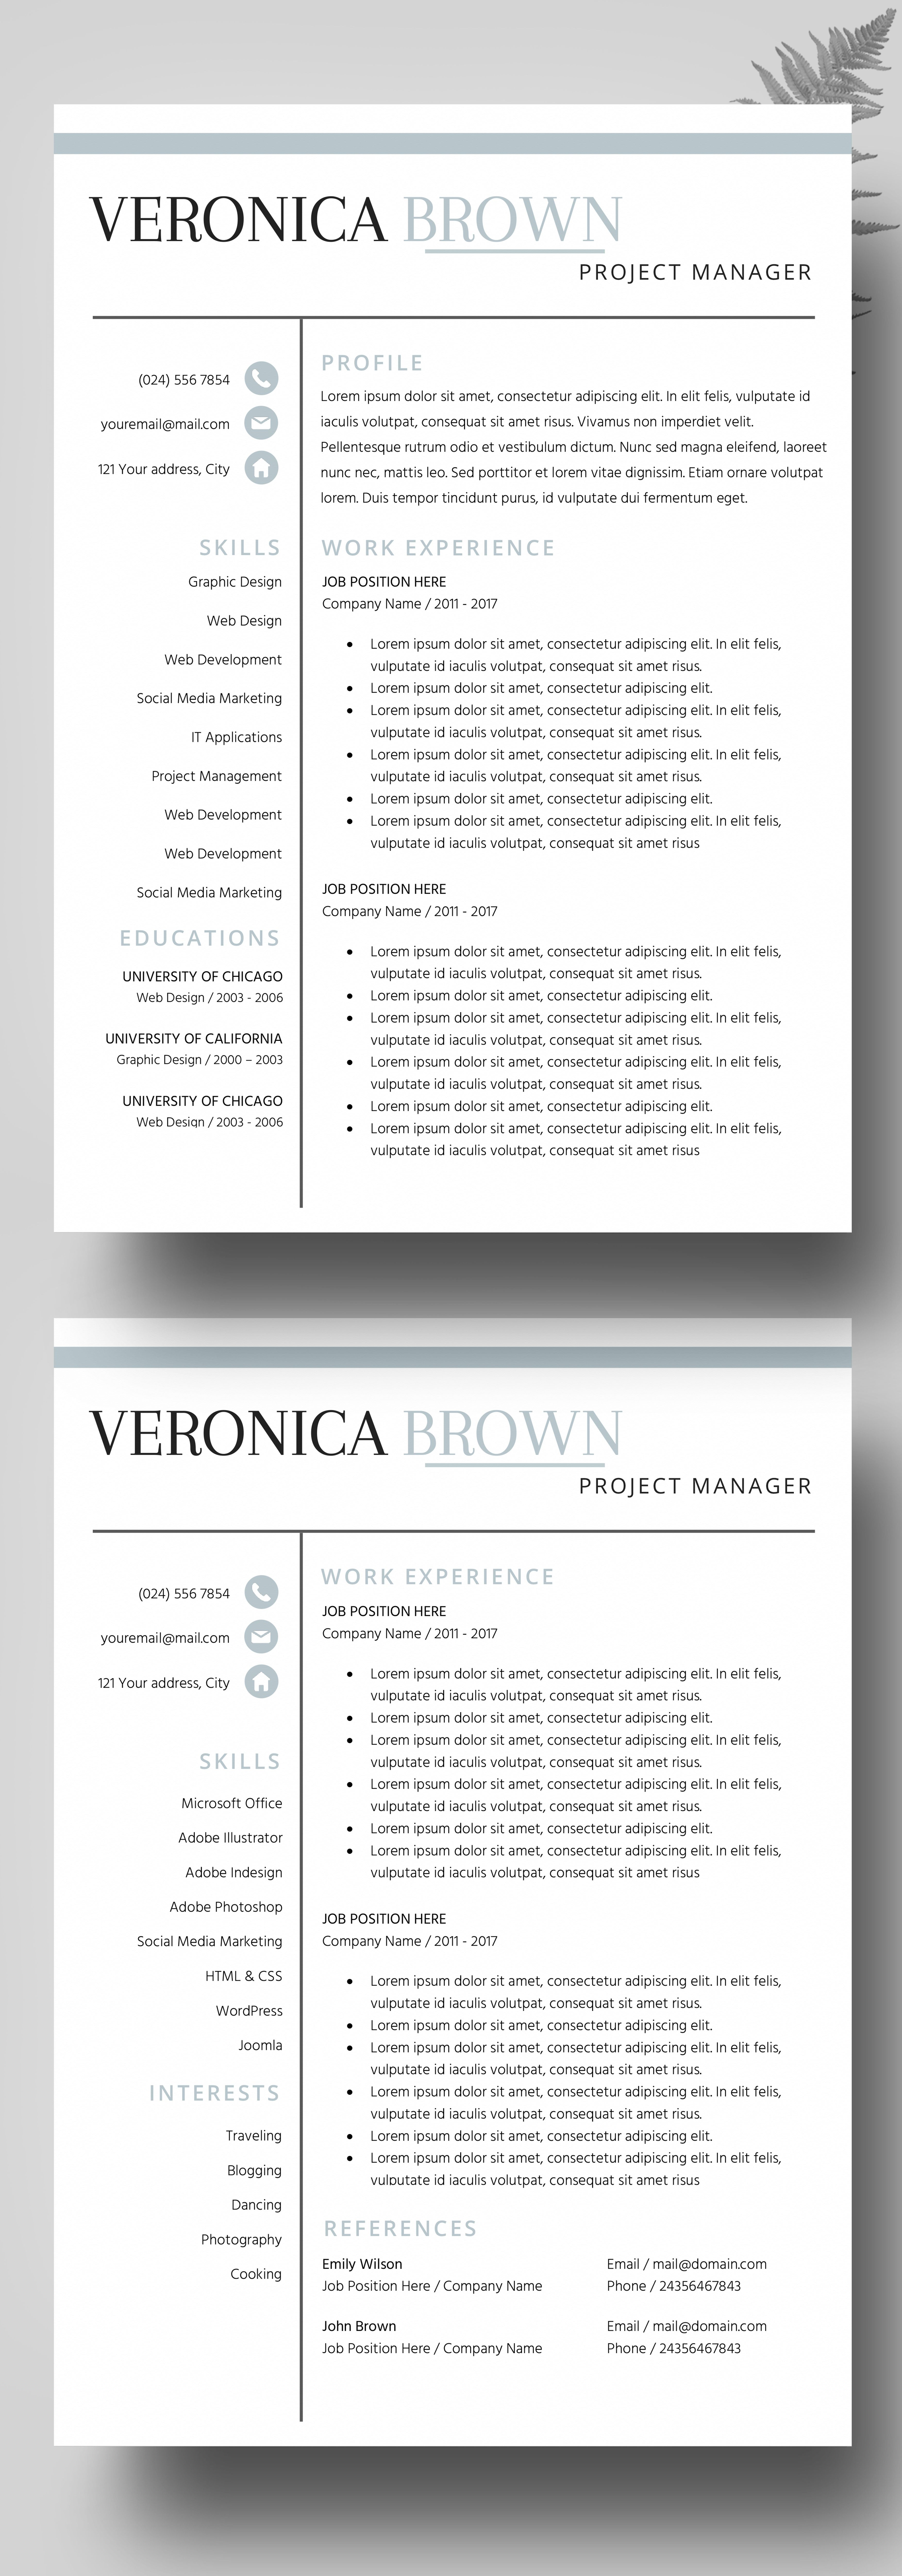 Resume Instant Download, Resume Templates Creative Resume Design ...